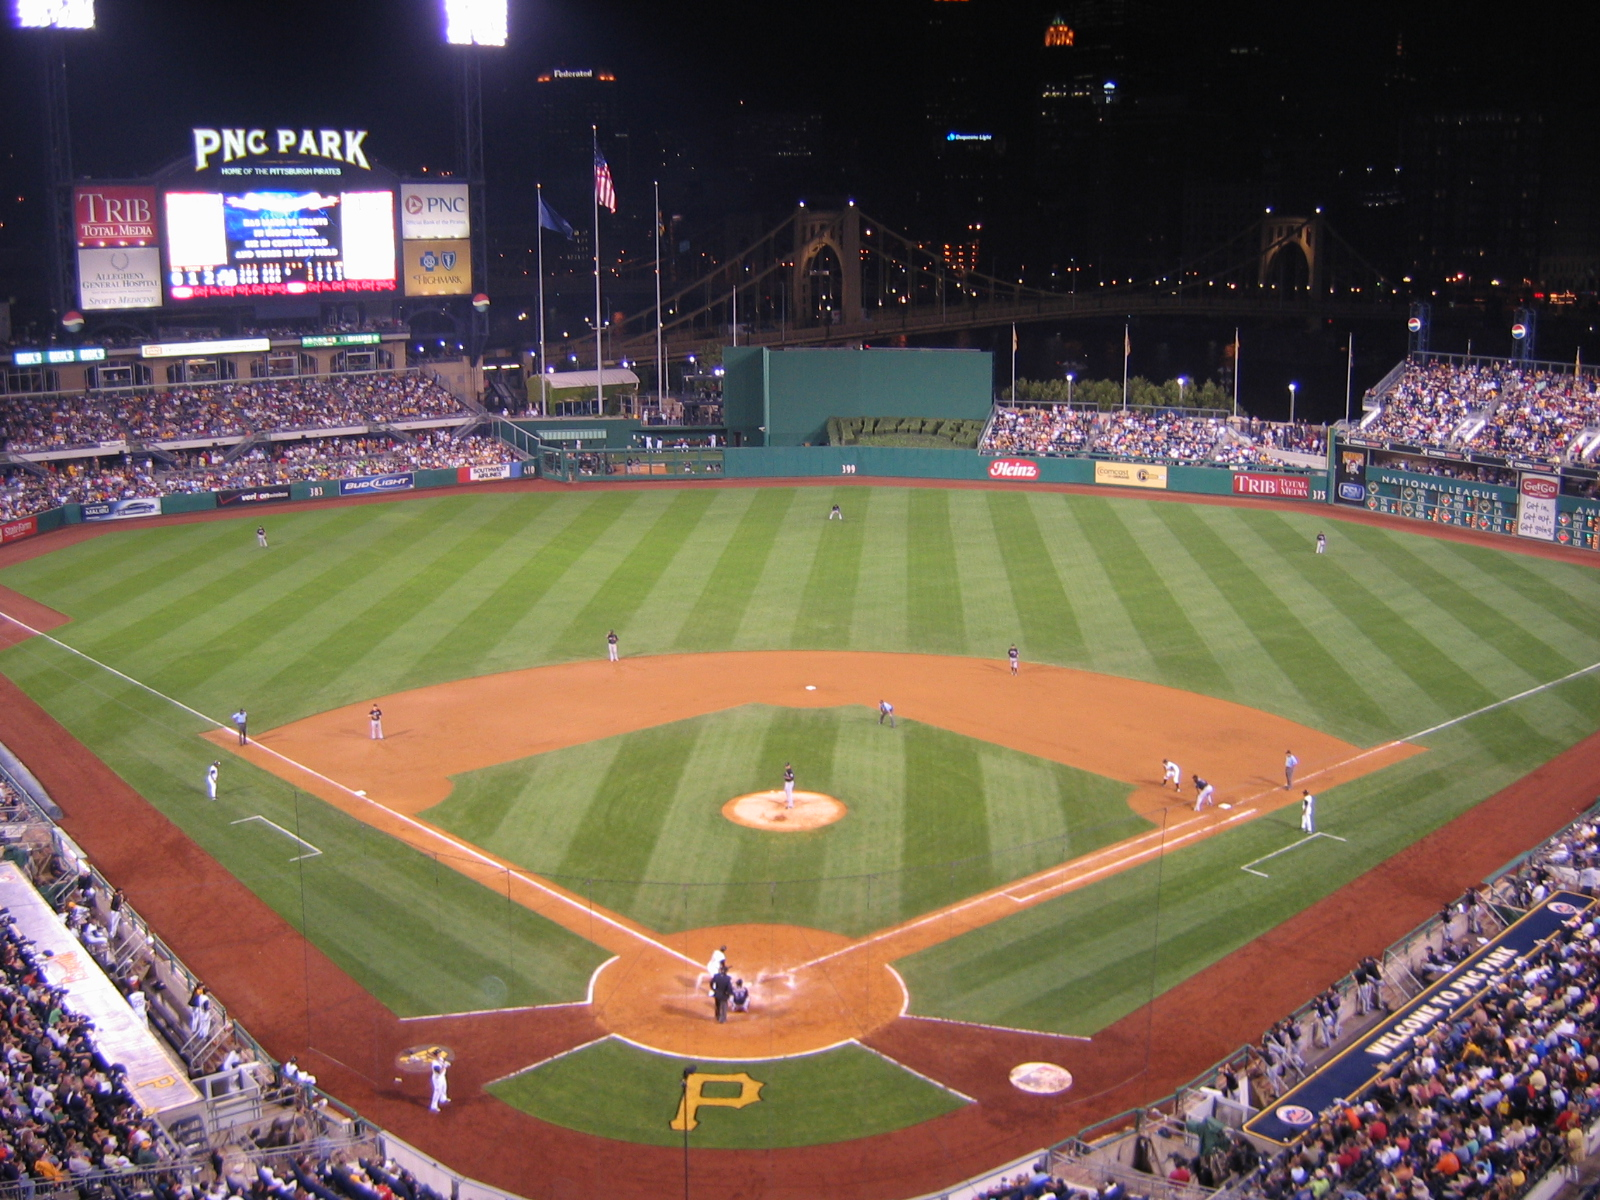 #1 – PNC Park – 5 games attended